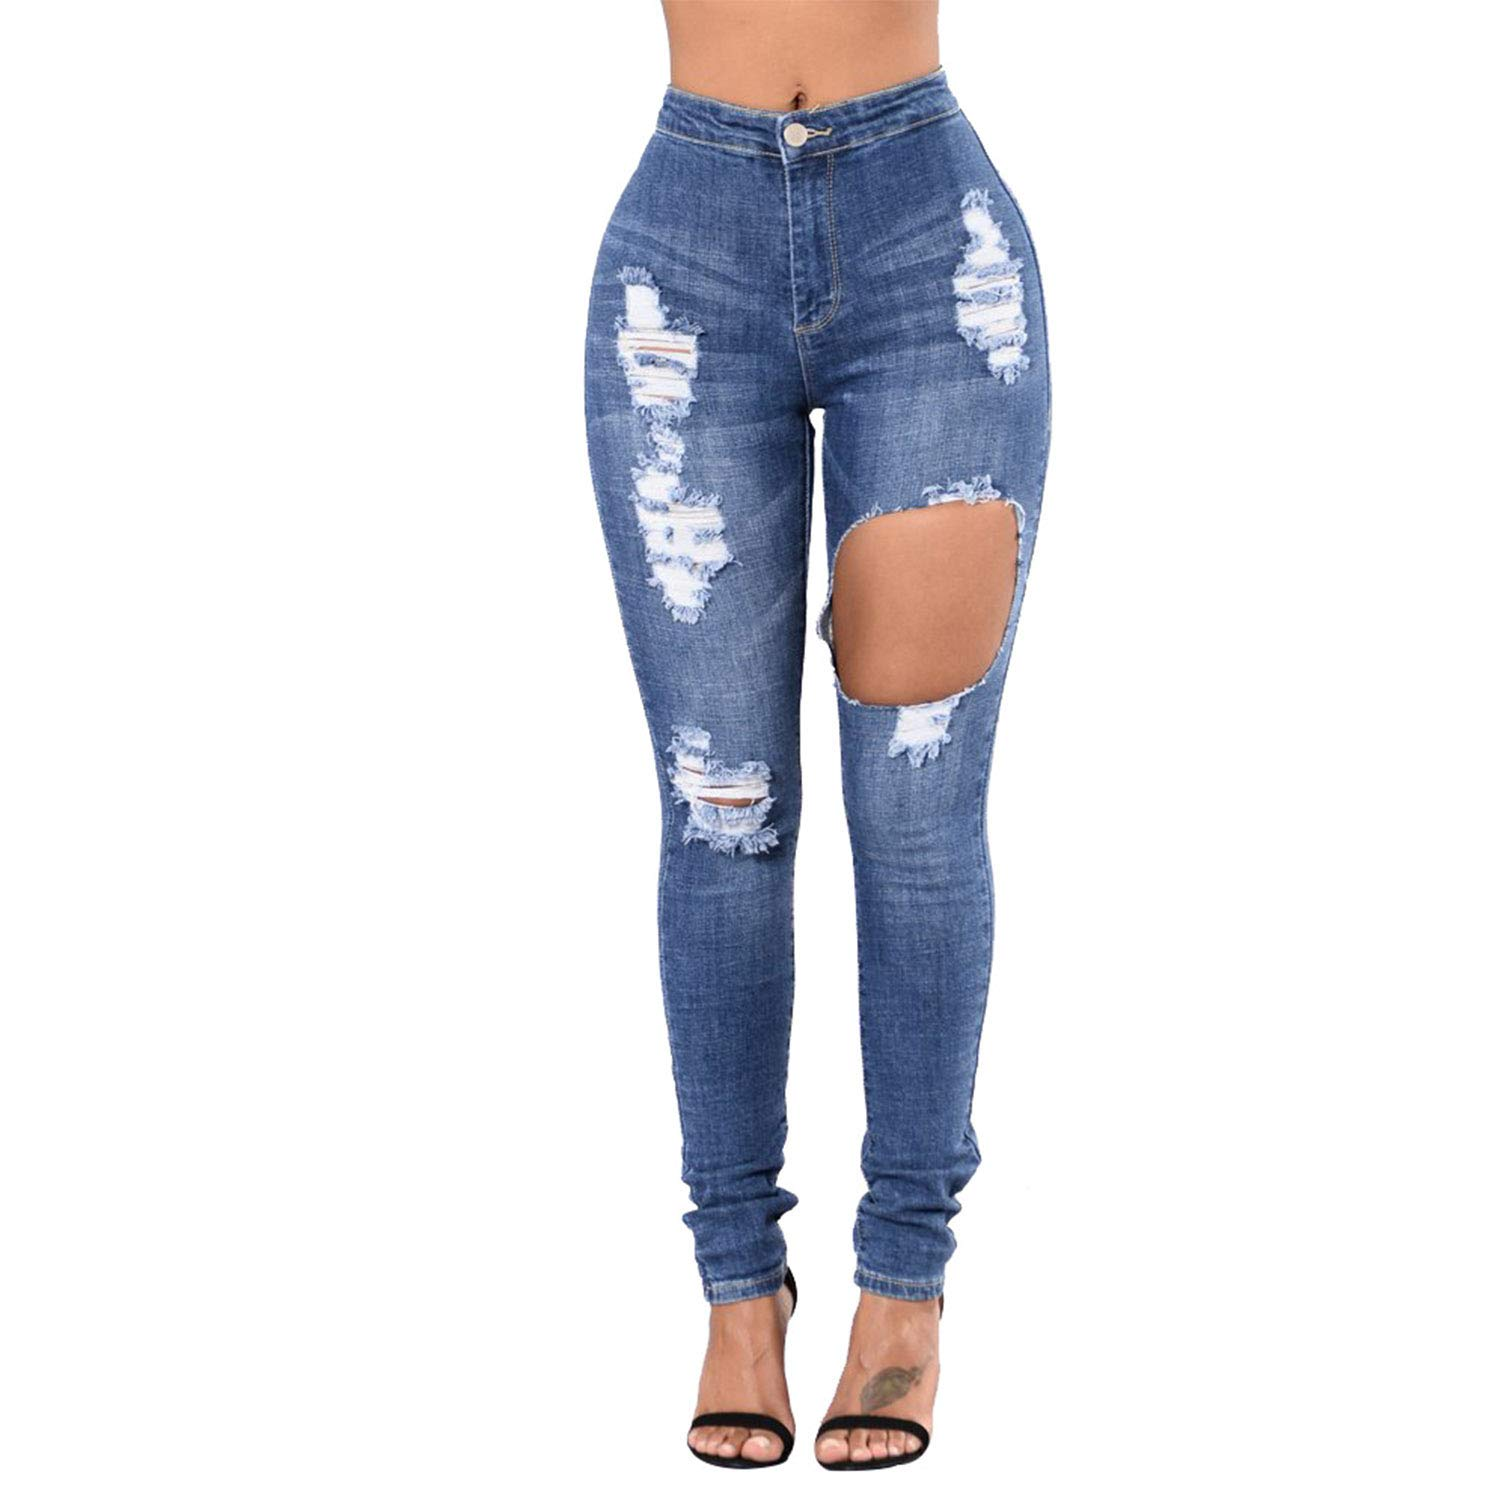 Women's Fashion Personality Jeans Slim Stretchy Straight Destroyed Ripped Skinny Jeans Suit for Ladies Girls Daily Outwear